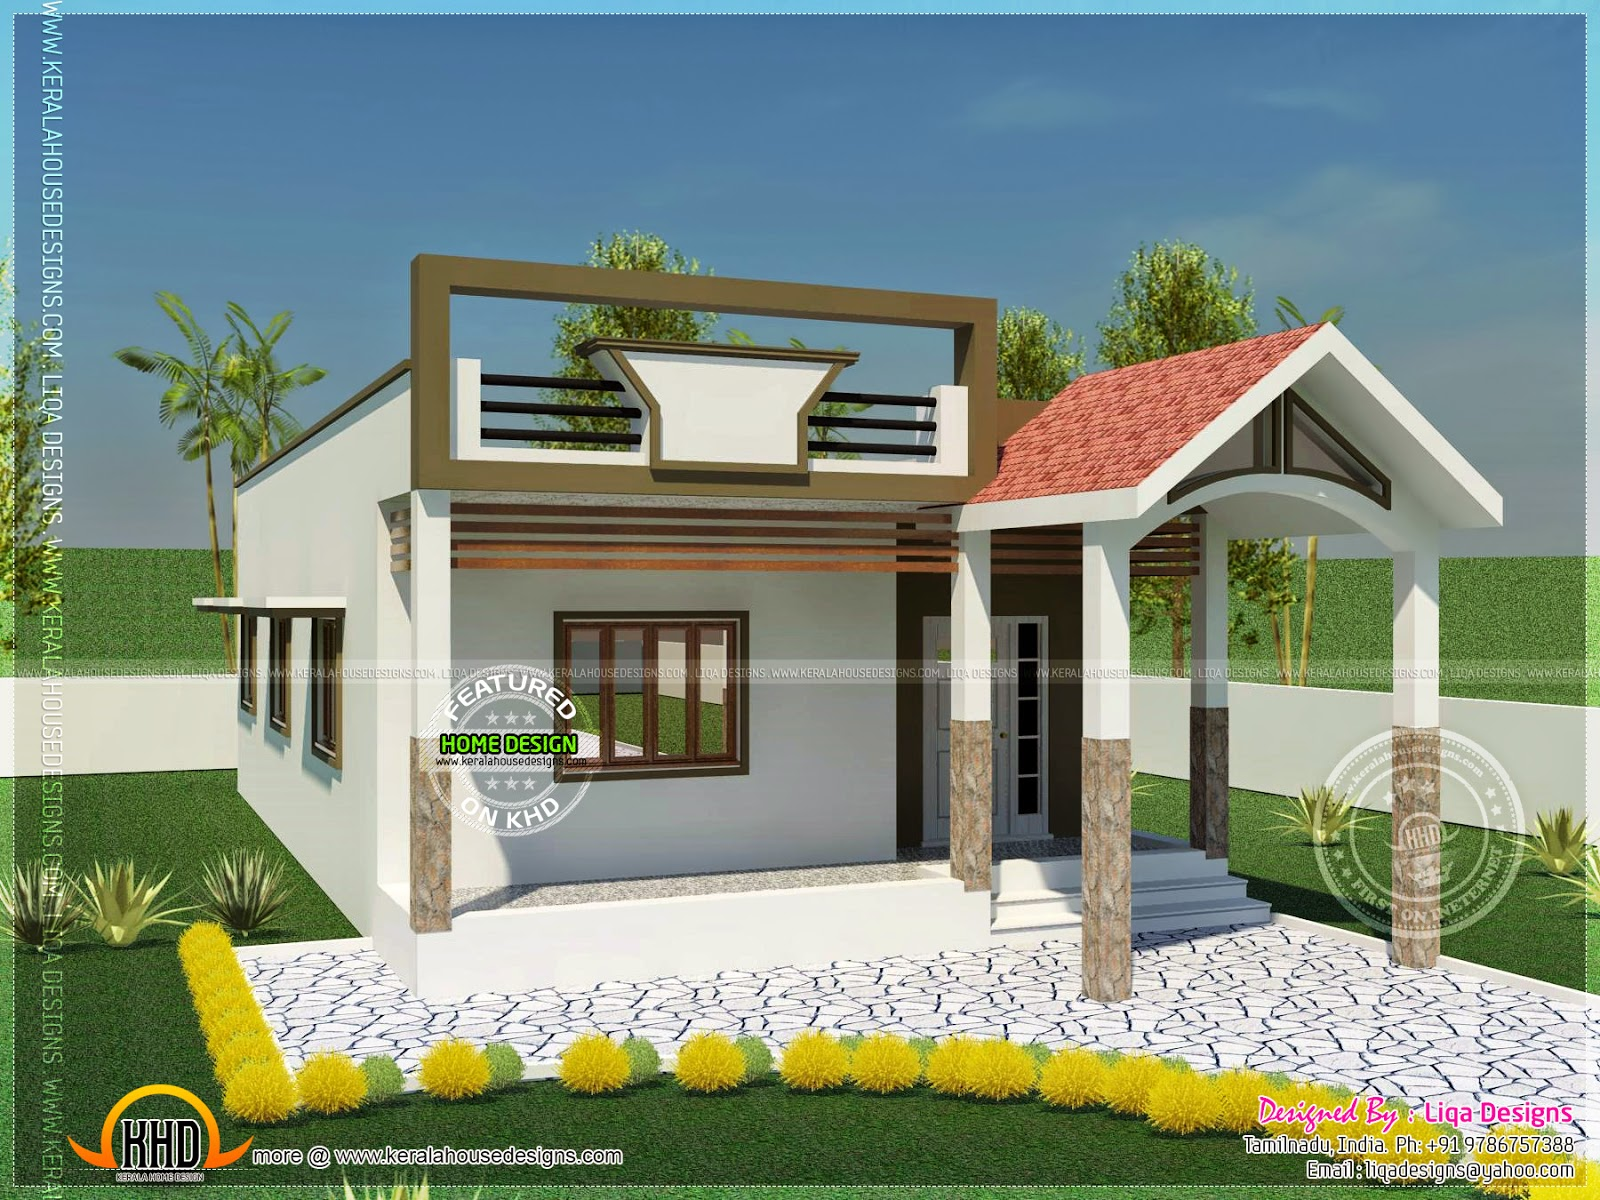 740 square feet single storied house kerala home design for Tamil nadu house plan